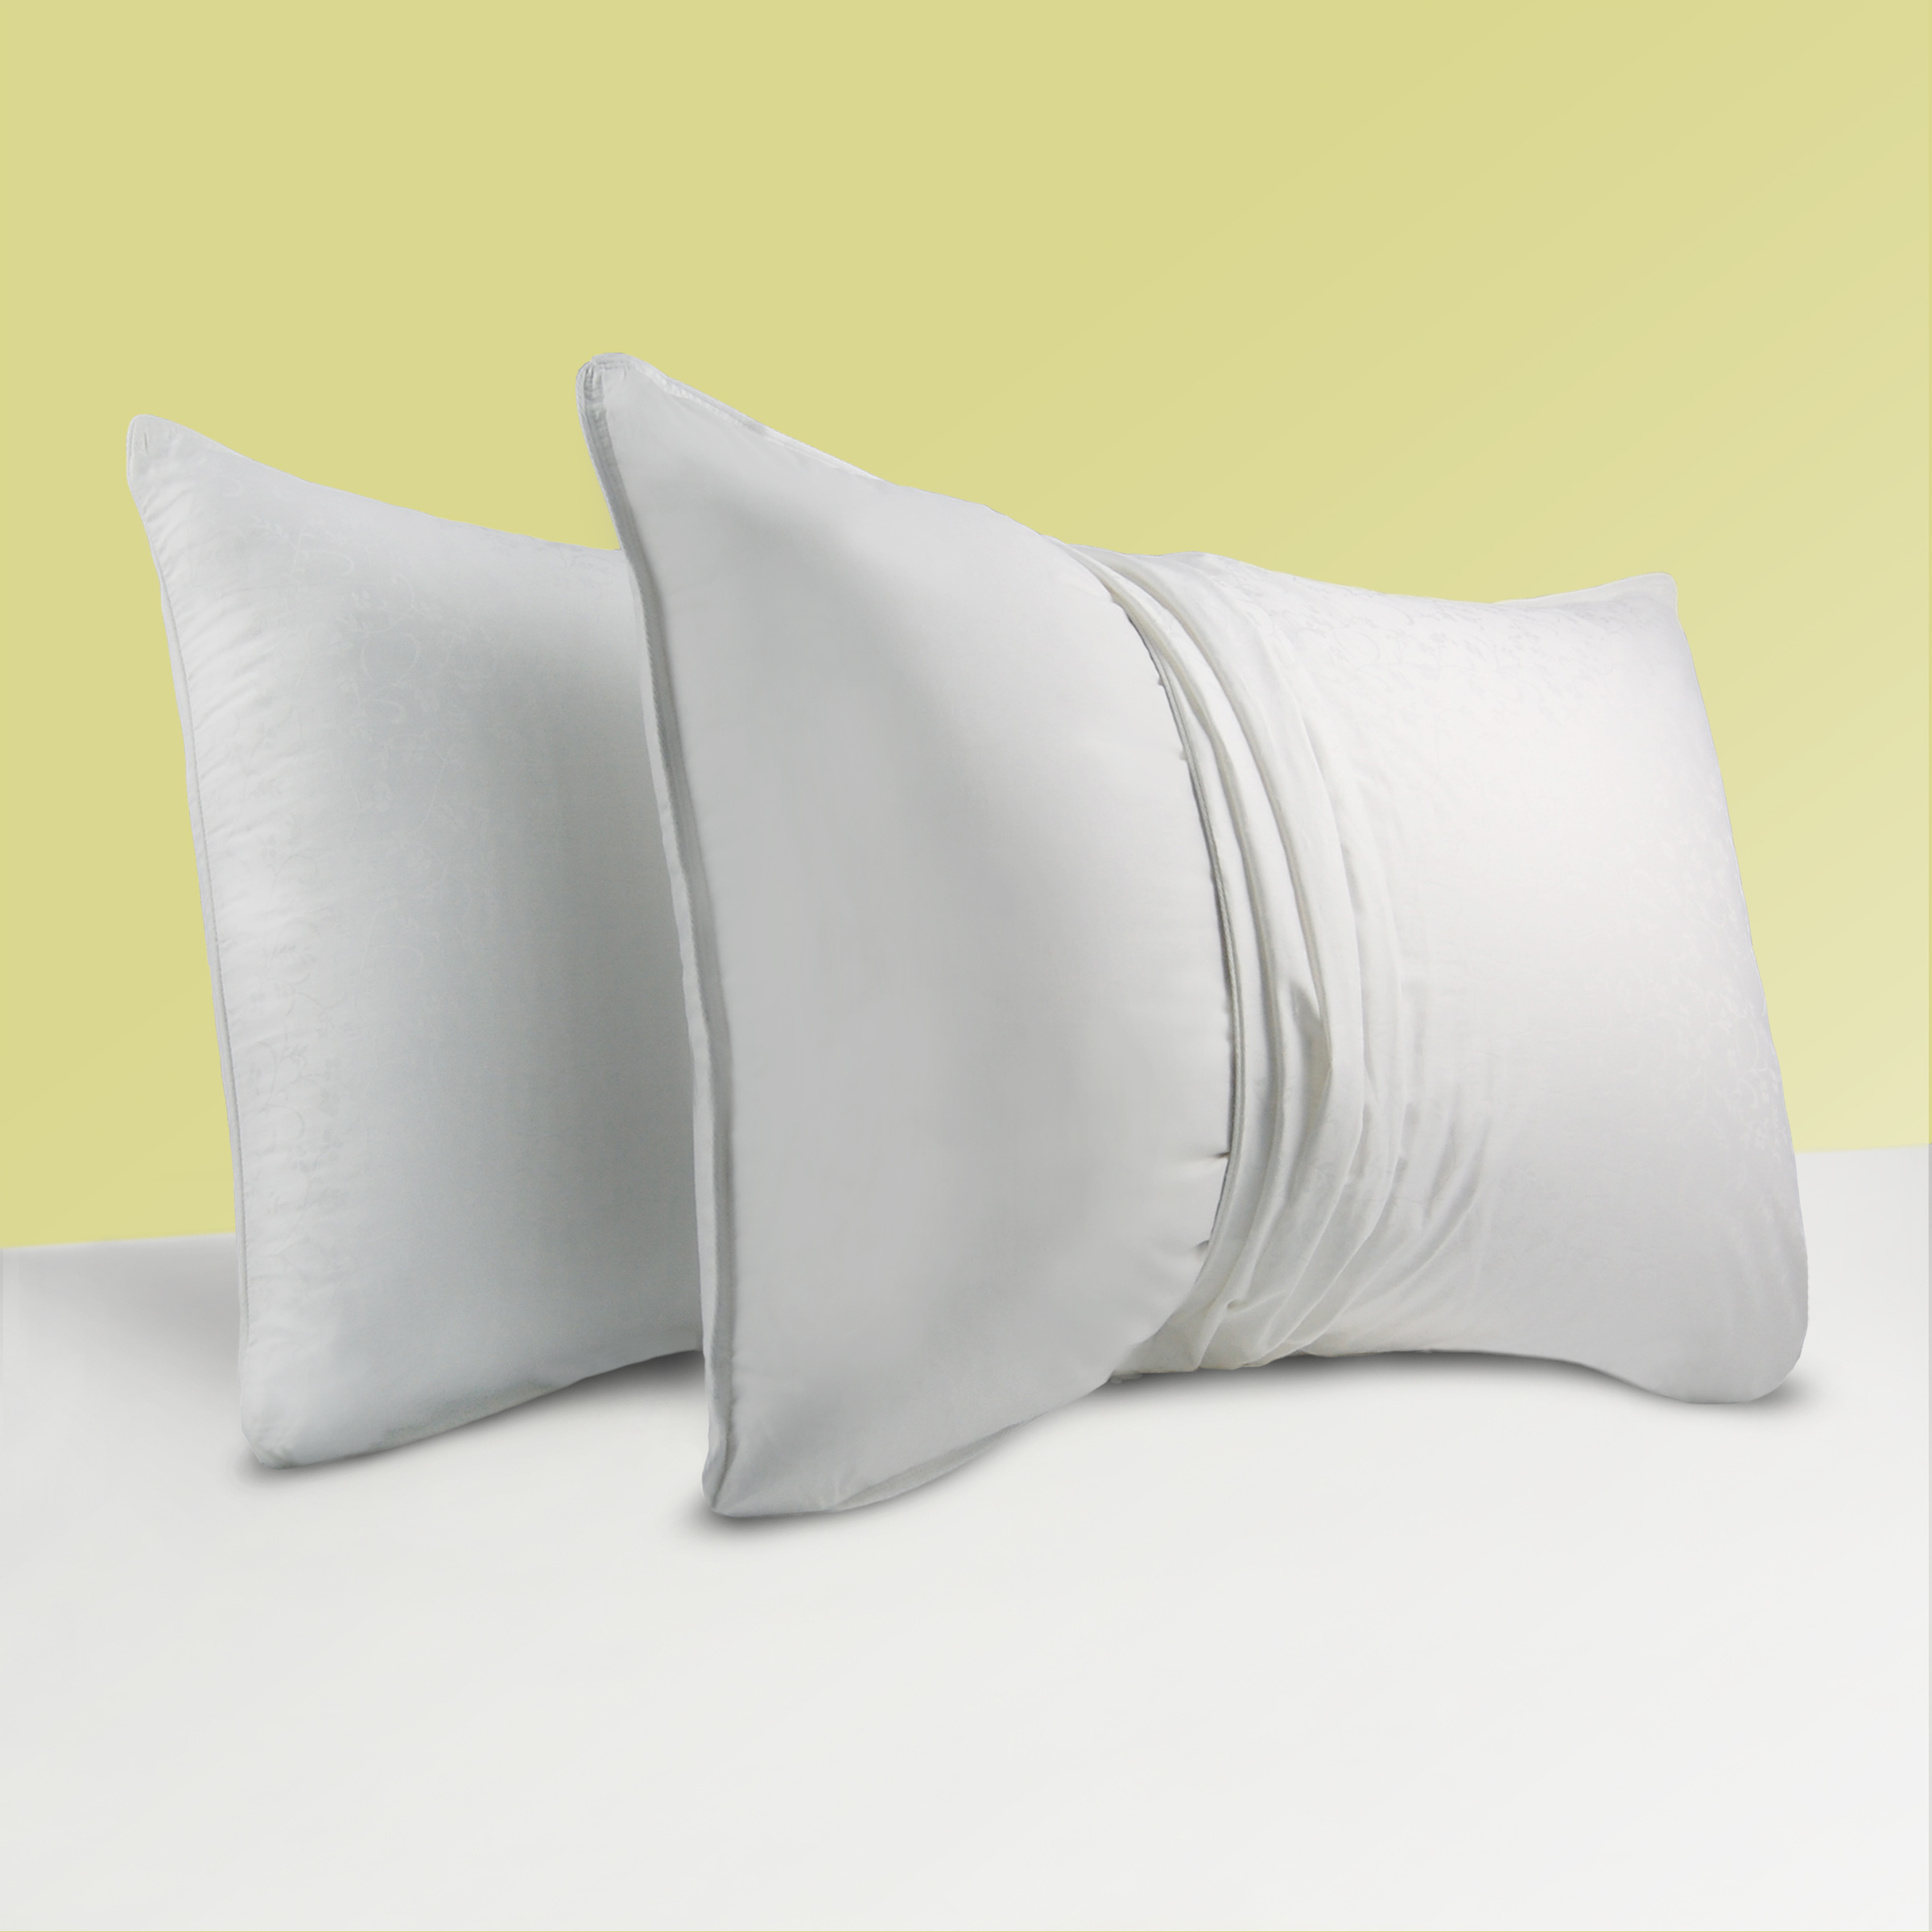 Pacific Coast ALLERSURE PILLOW PROTECTOR Super Standard Or King